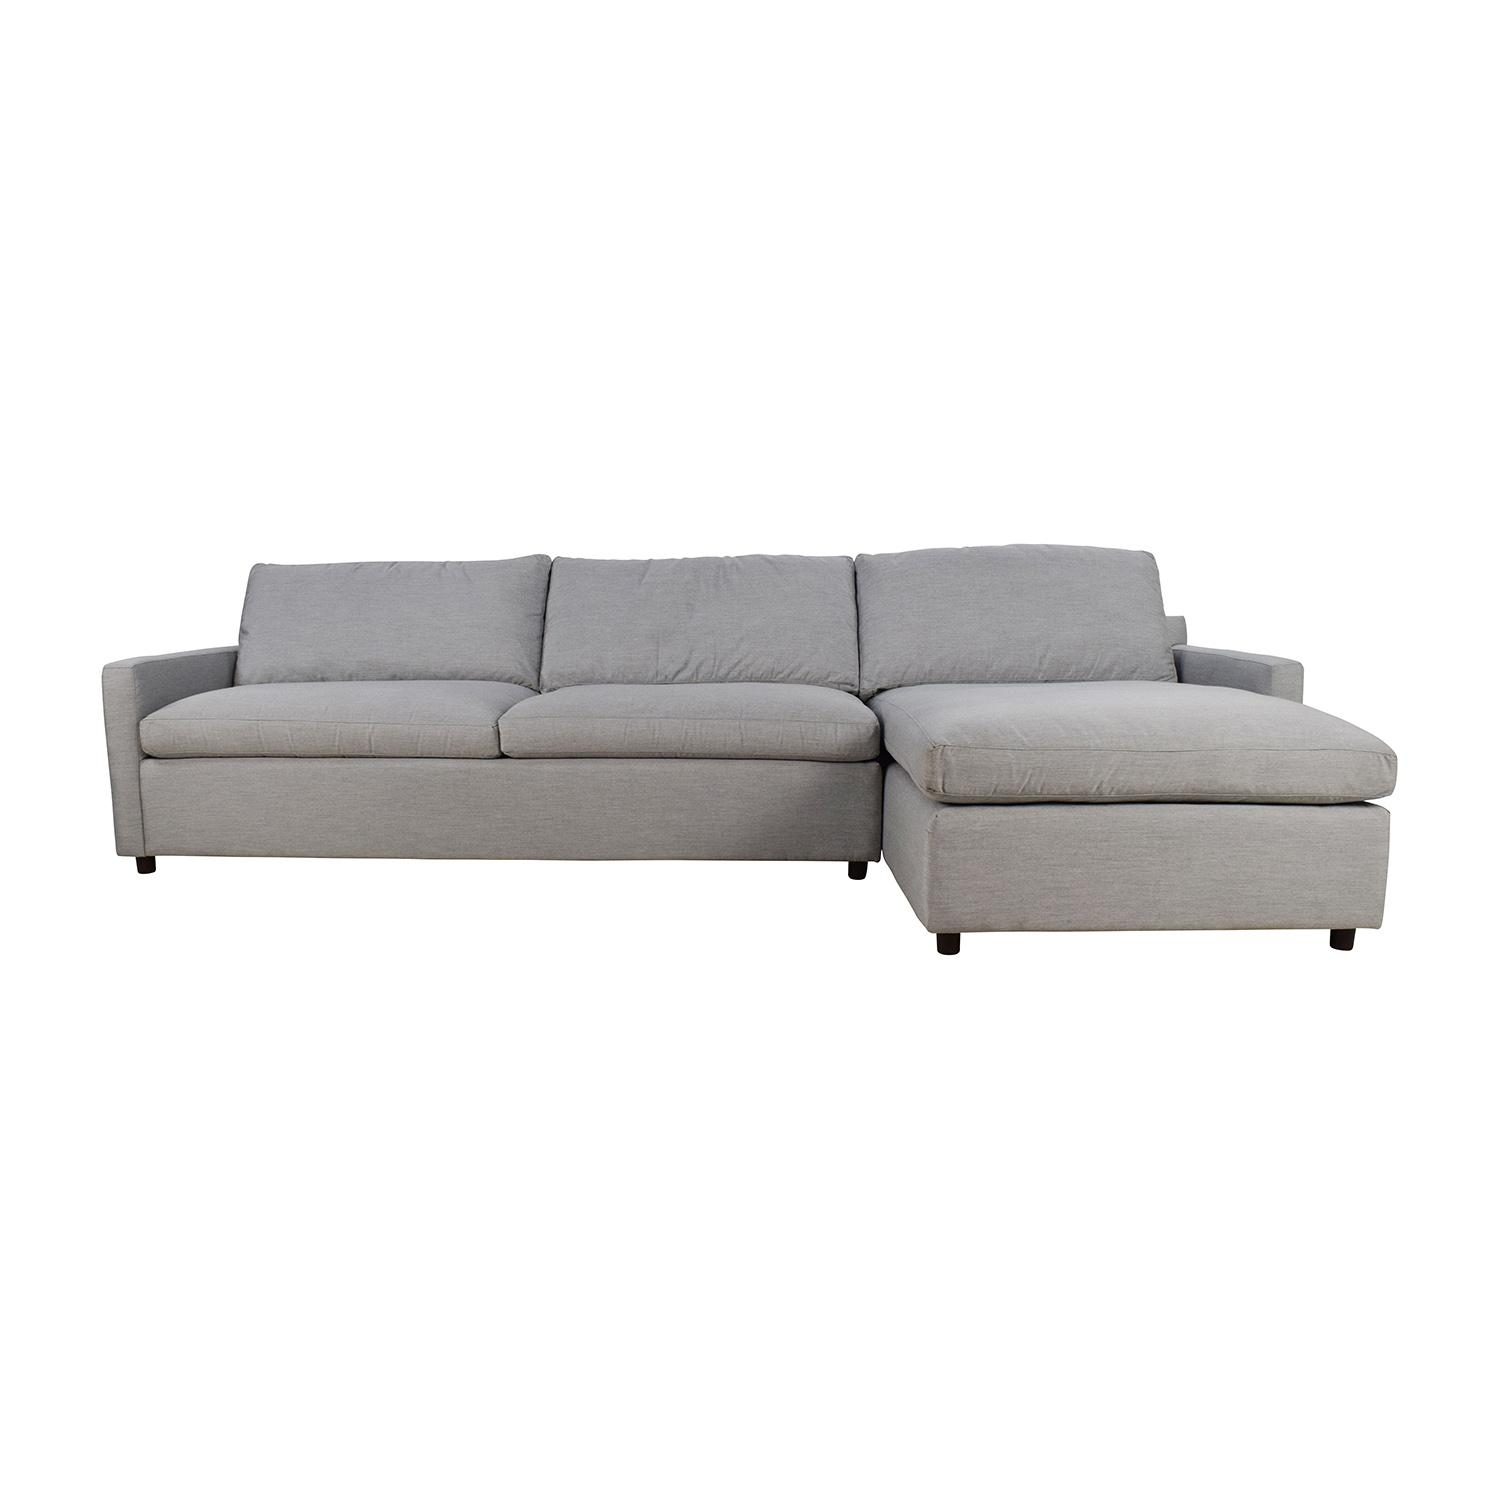 50% Off - Abc Carpet And Home Abc Carpet & Home Cobble Hill Lucali for Cobble Hill Sofas